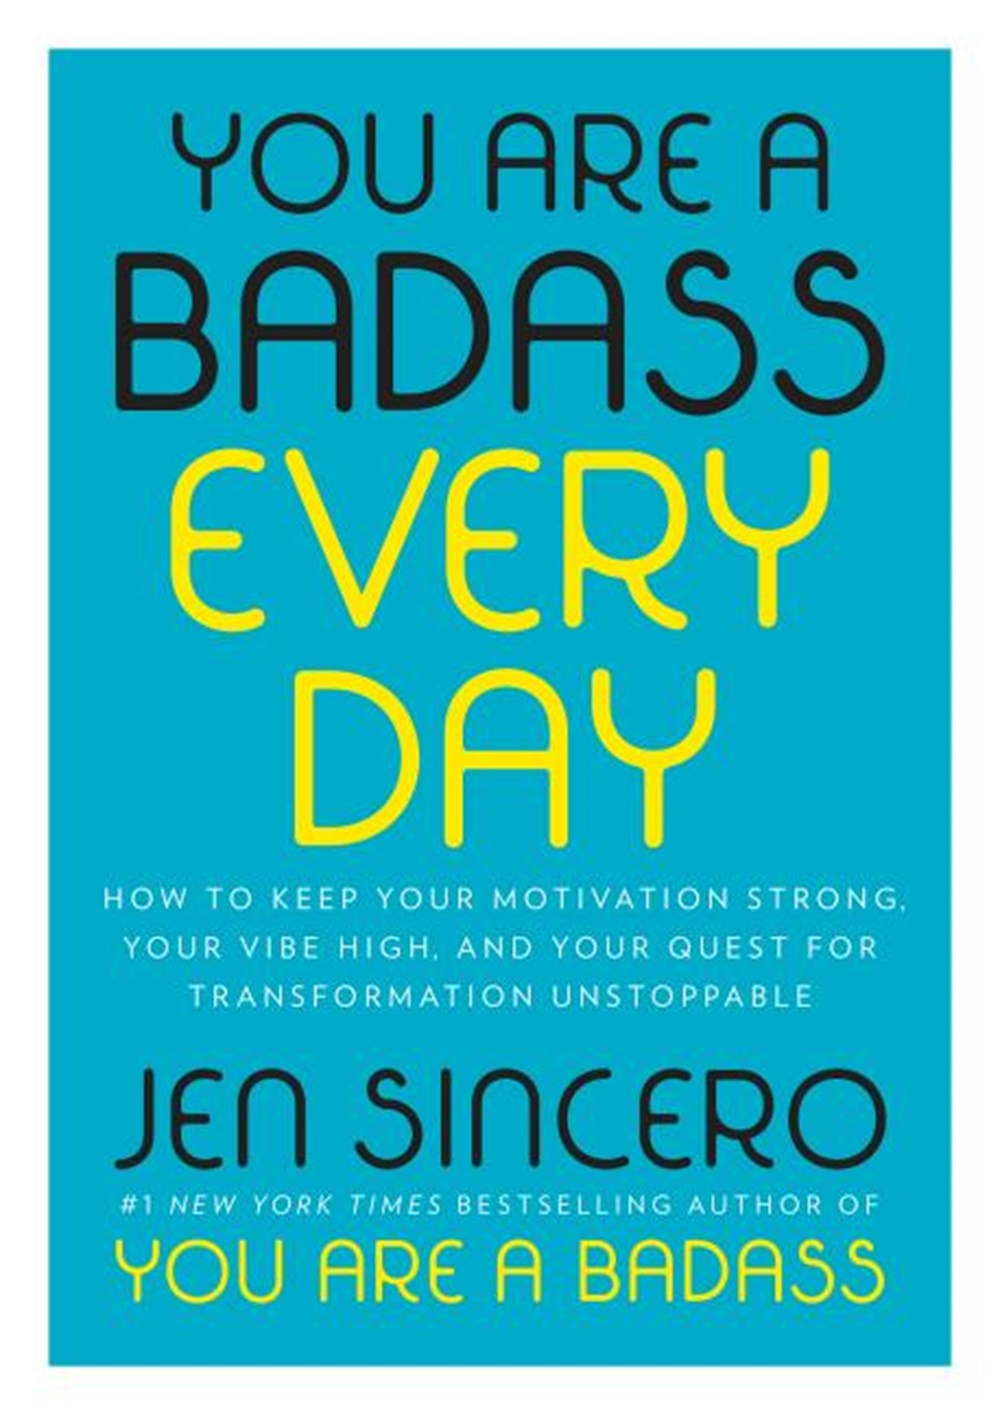 You Are a Badass Every Day How to Keep Your Motivation Strong, Your Vibe High, and Your Quest for Tr